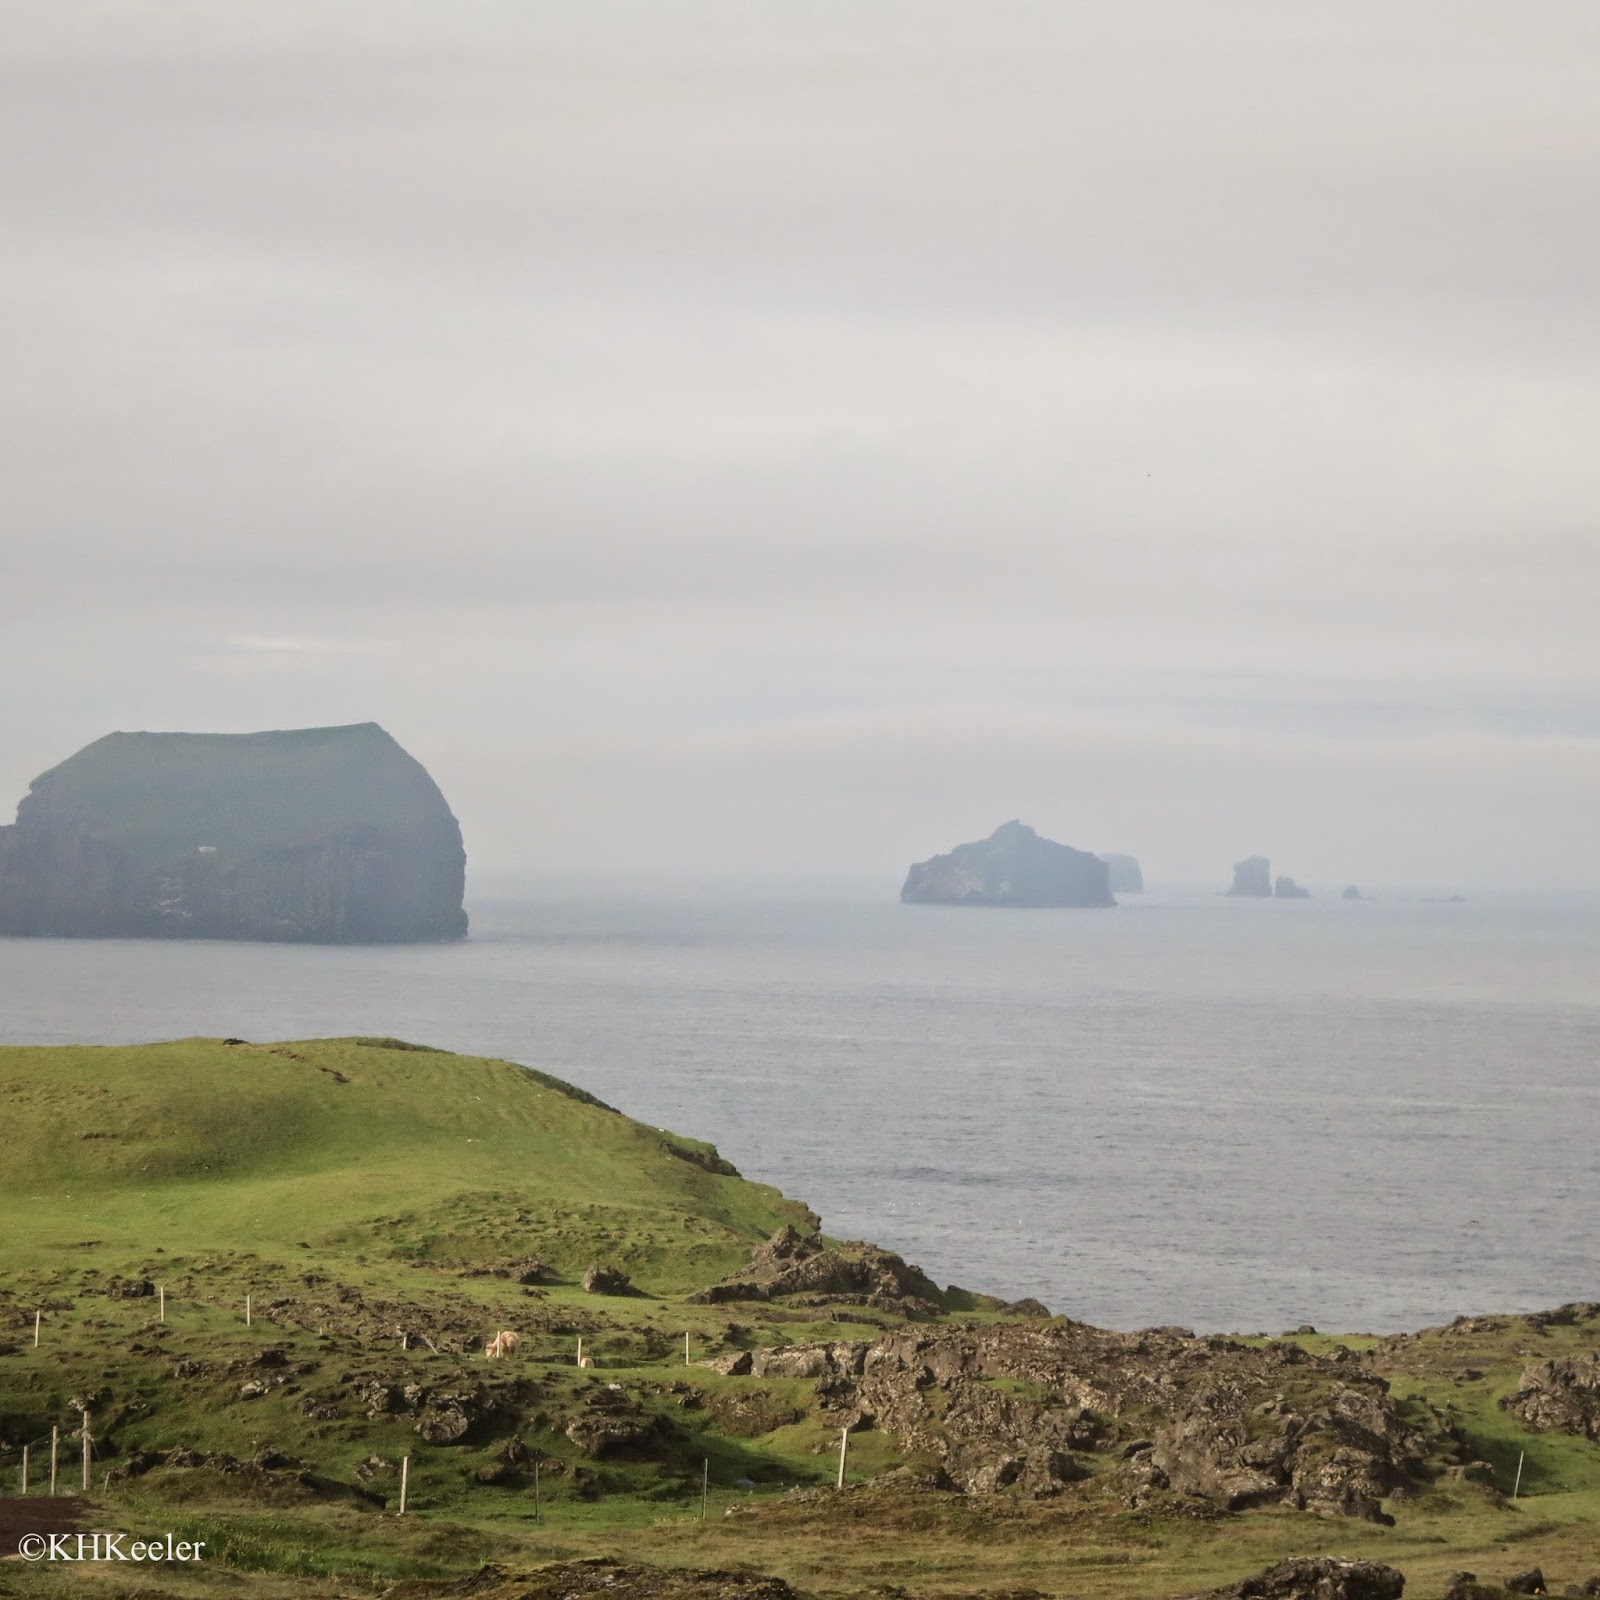 Chain of New Islands SW of Westman Islands